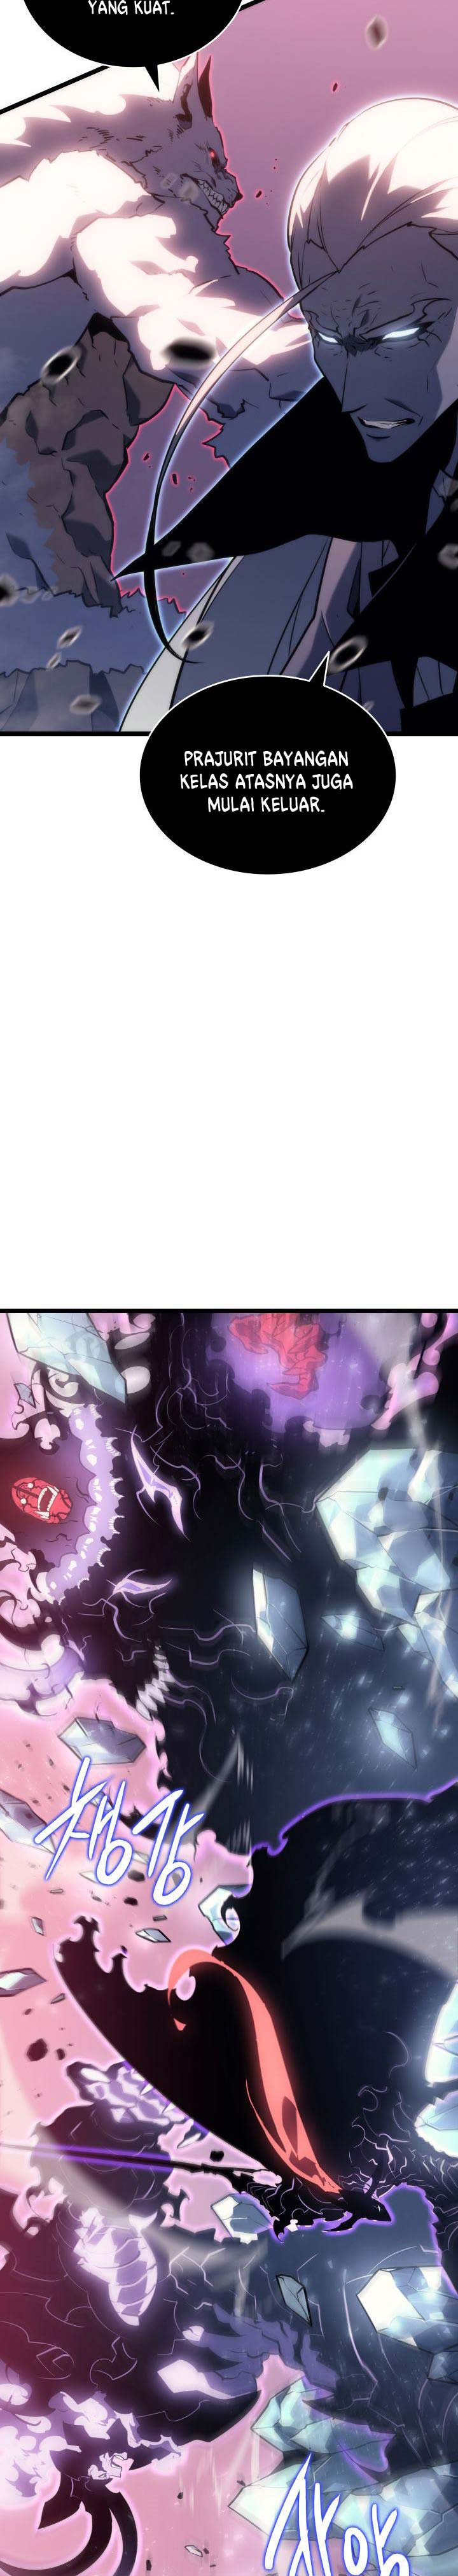 Solo Leveling: Chapter 159 - Page 30